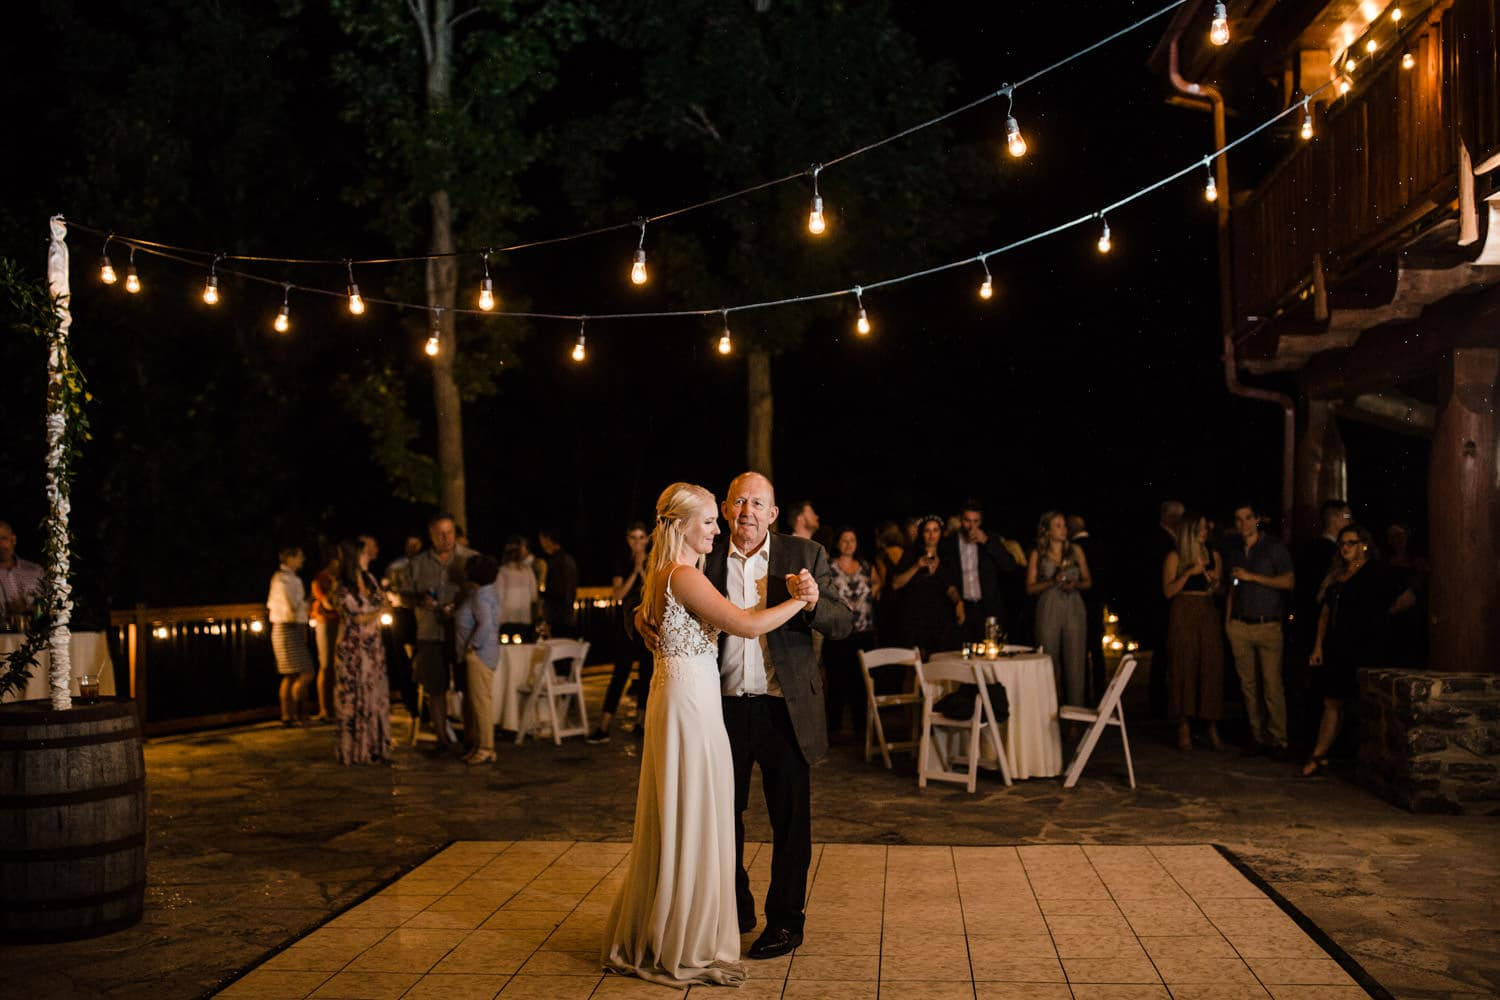 bride dances with her father under twinkle lights at outdoor wedding